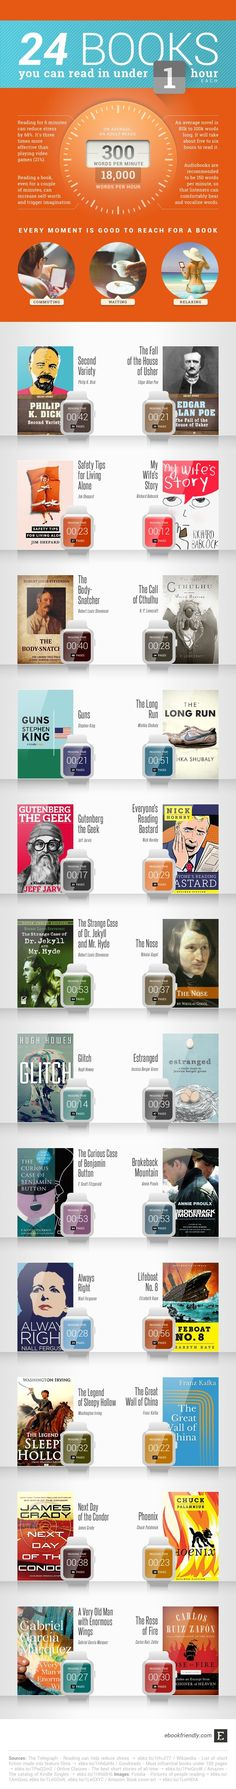 24 books you can read in under an hour each Infographic